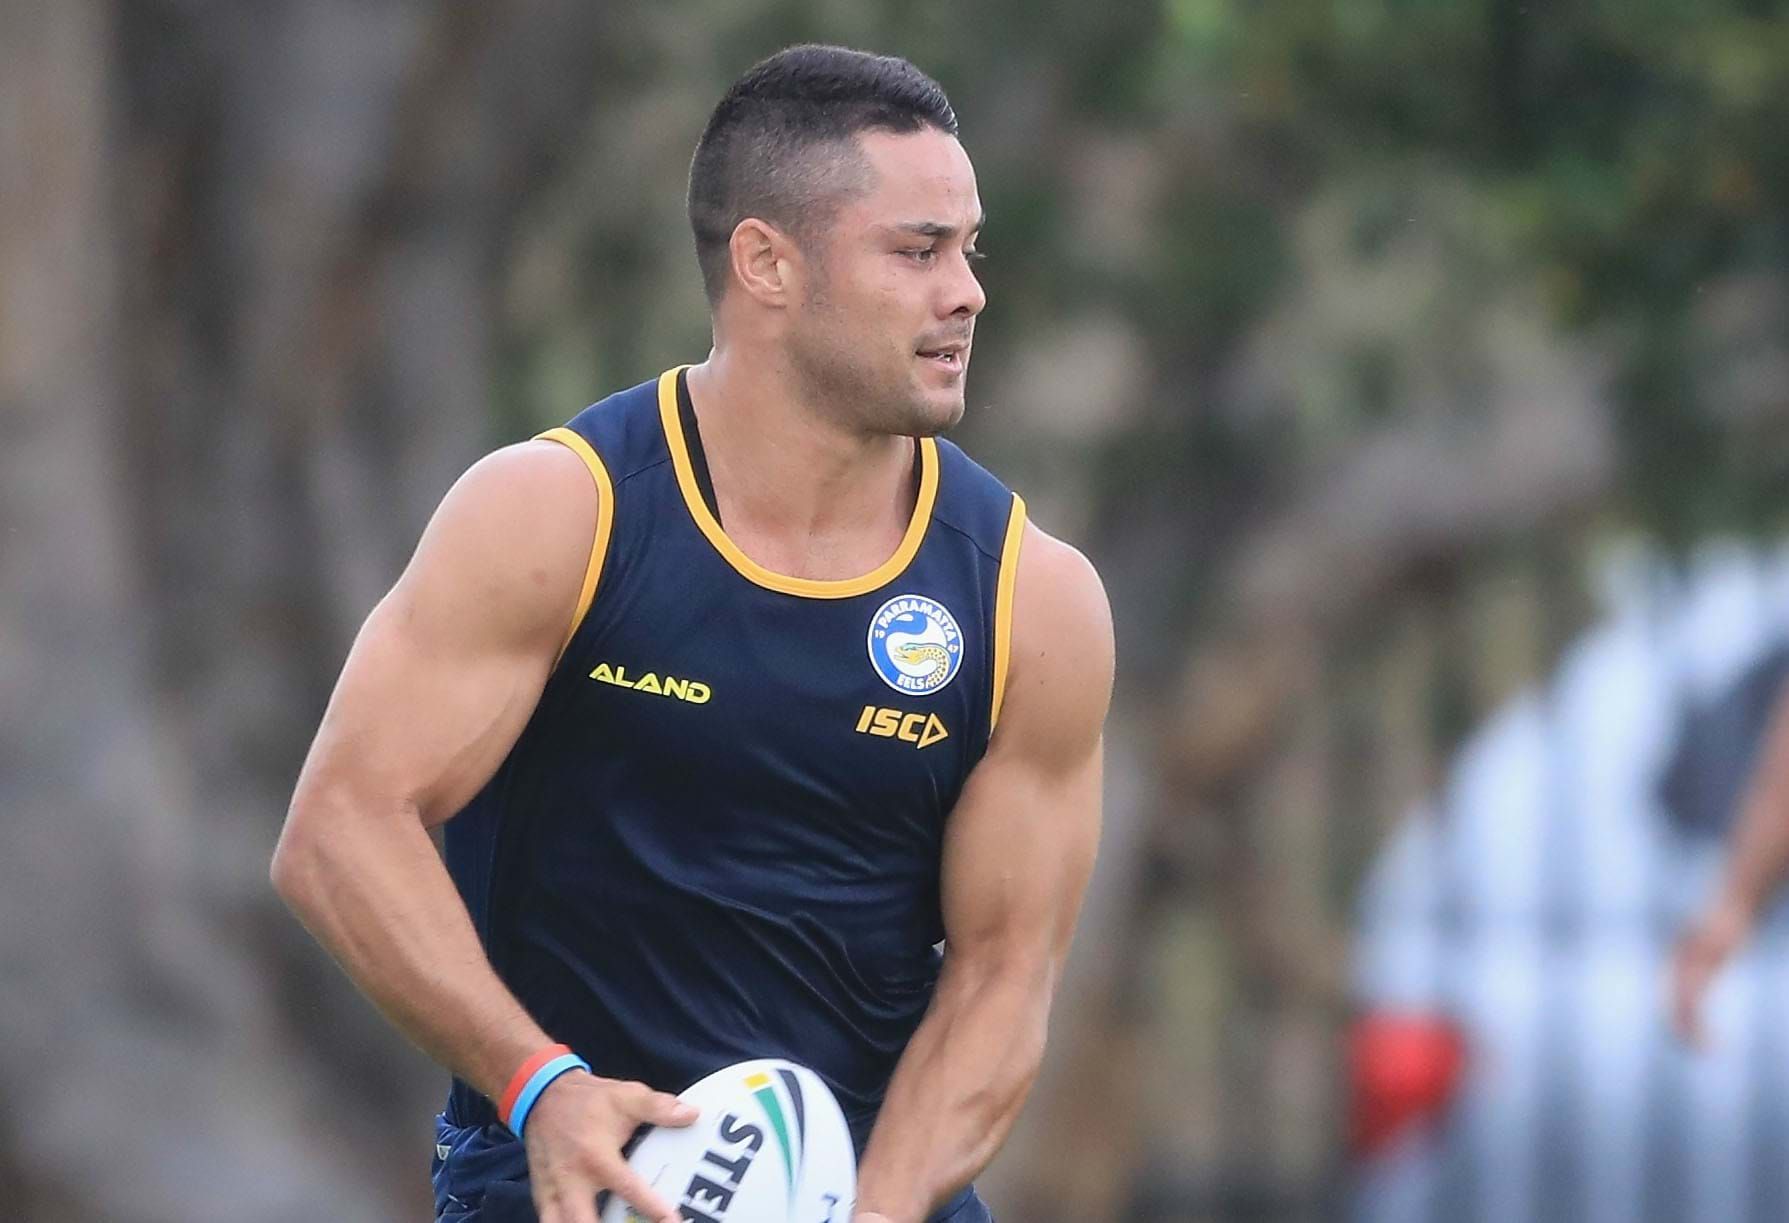 Jarryd Hayne Undergoes Fitness Drills On First Day Back With Eels